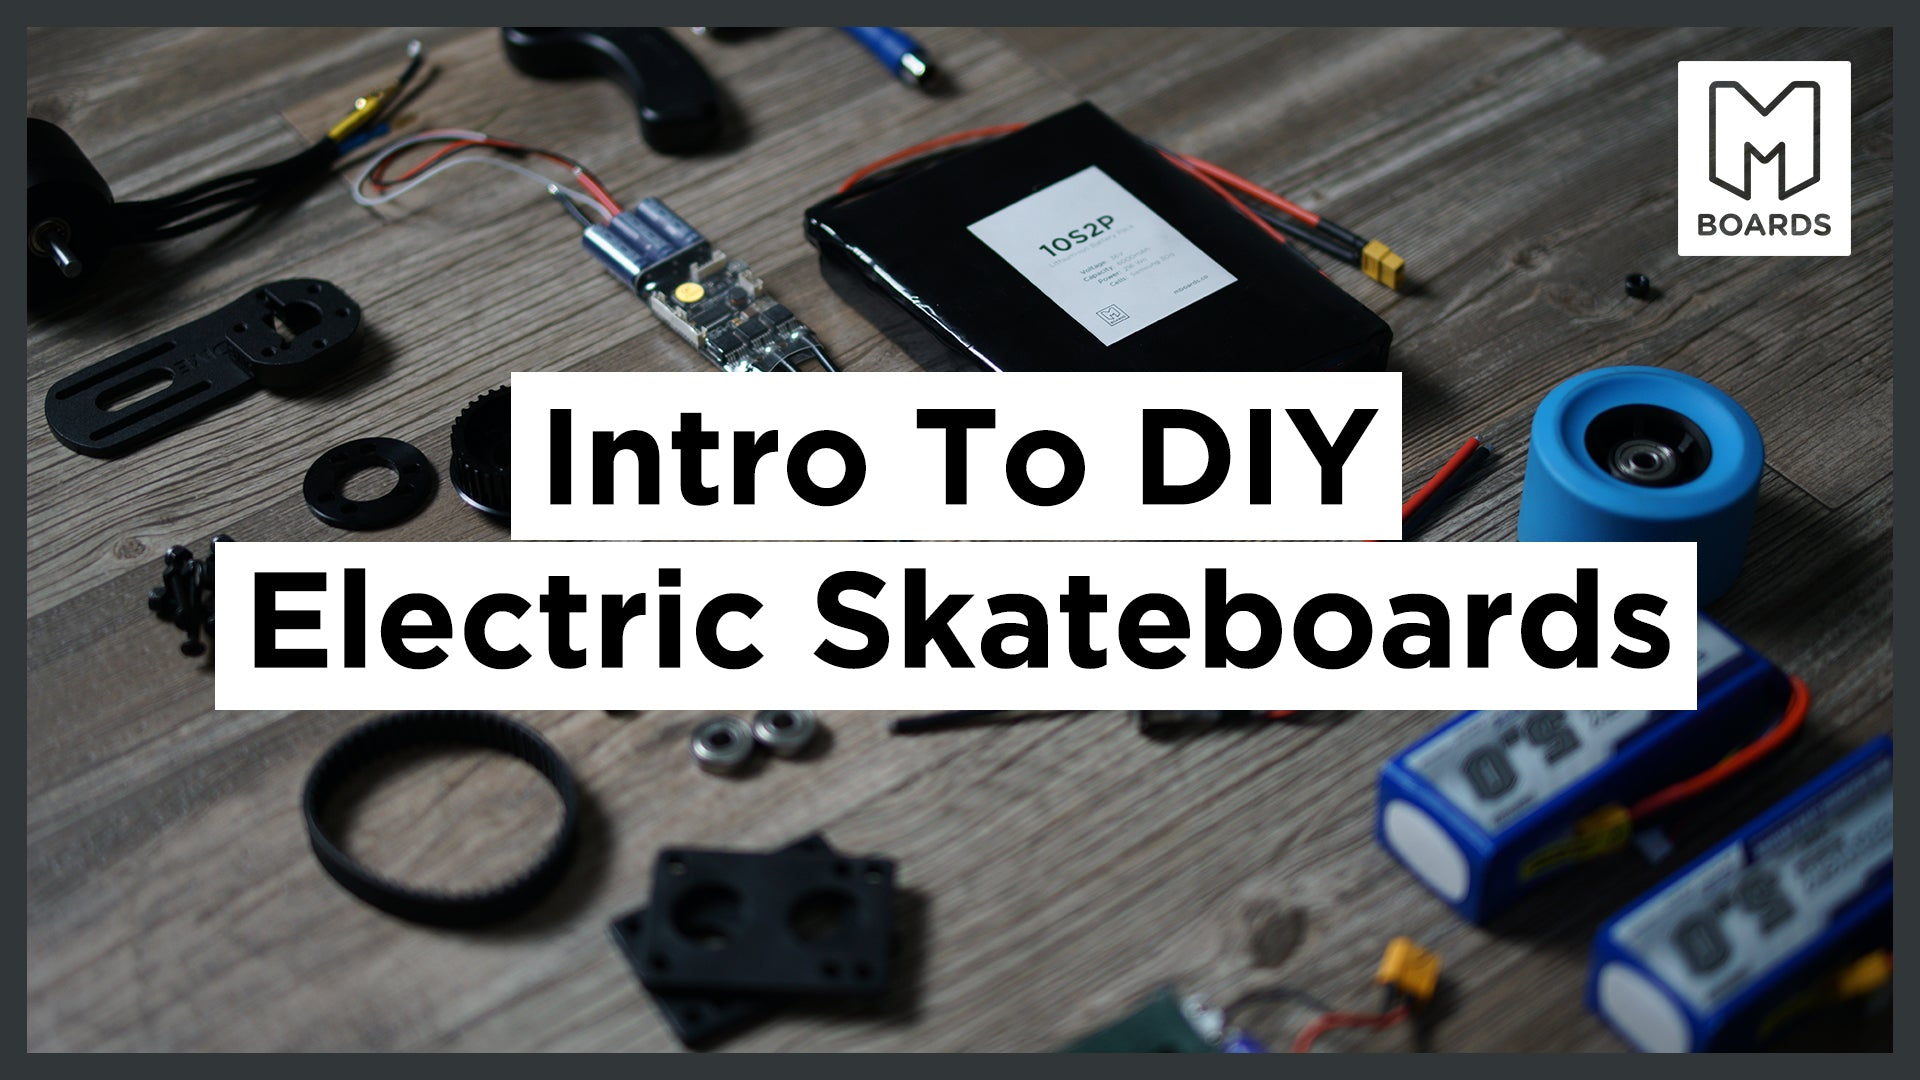 Intro to DIY Electric Skateboards